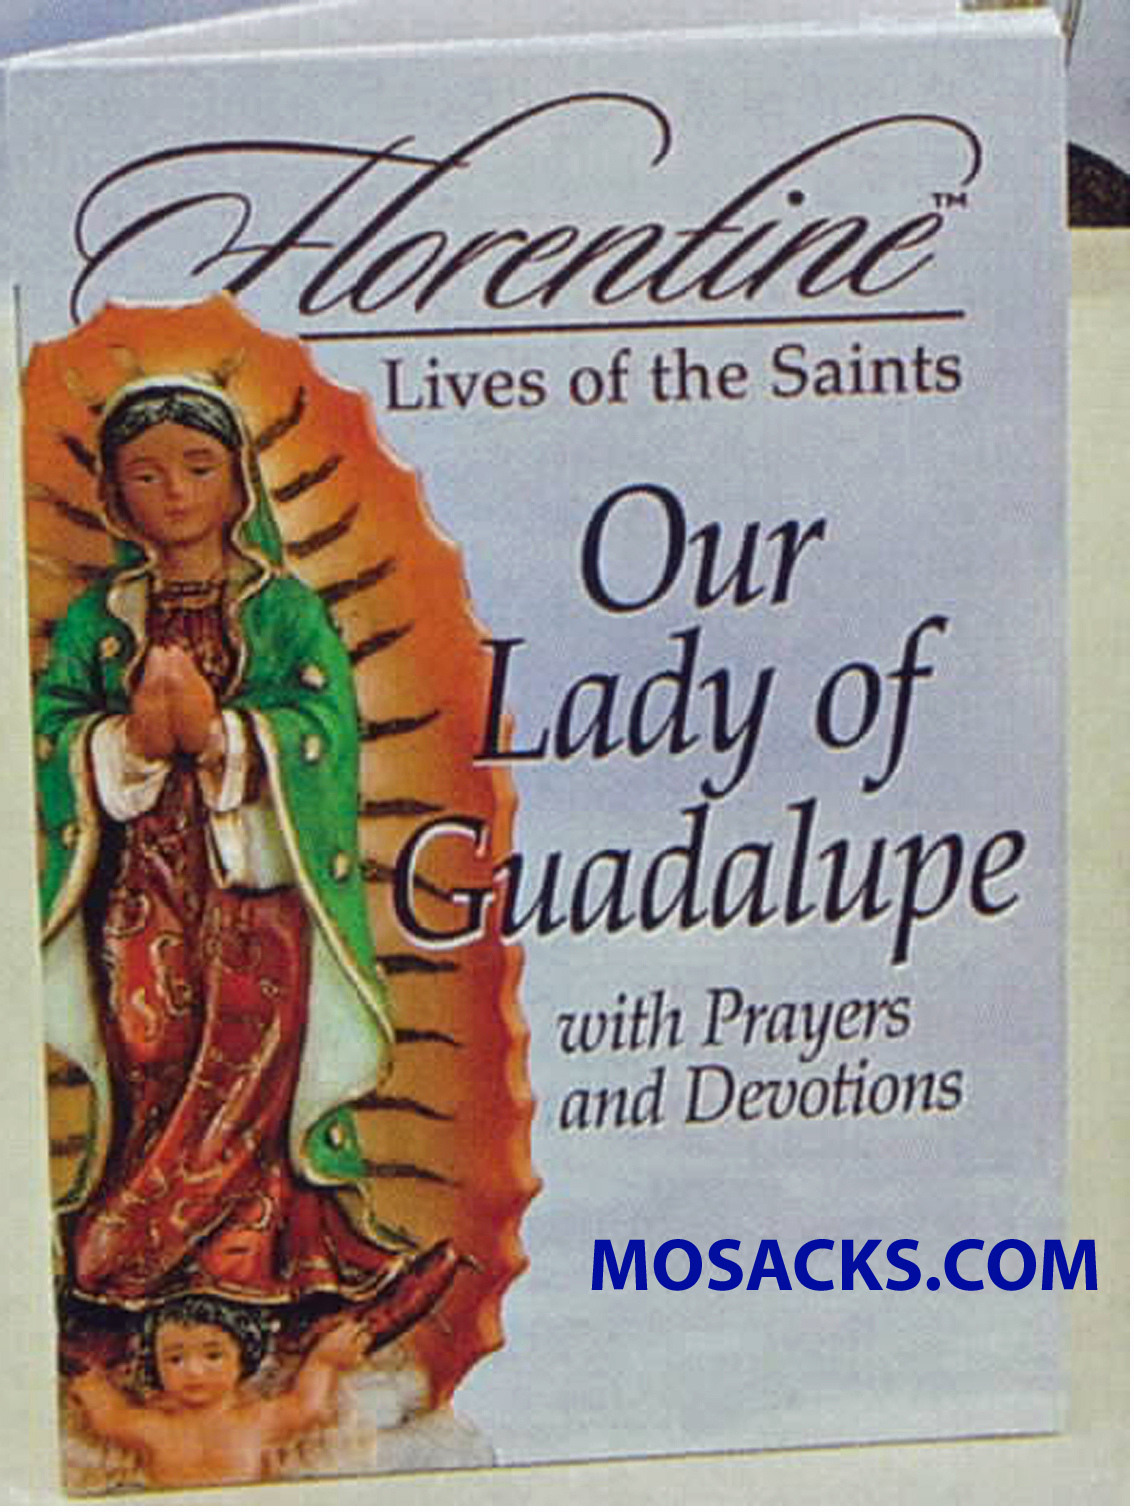 Florentine Lives of The Saints: Our Lady of Guadalupe by Mark Etling 306-11314